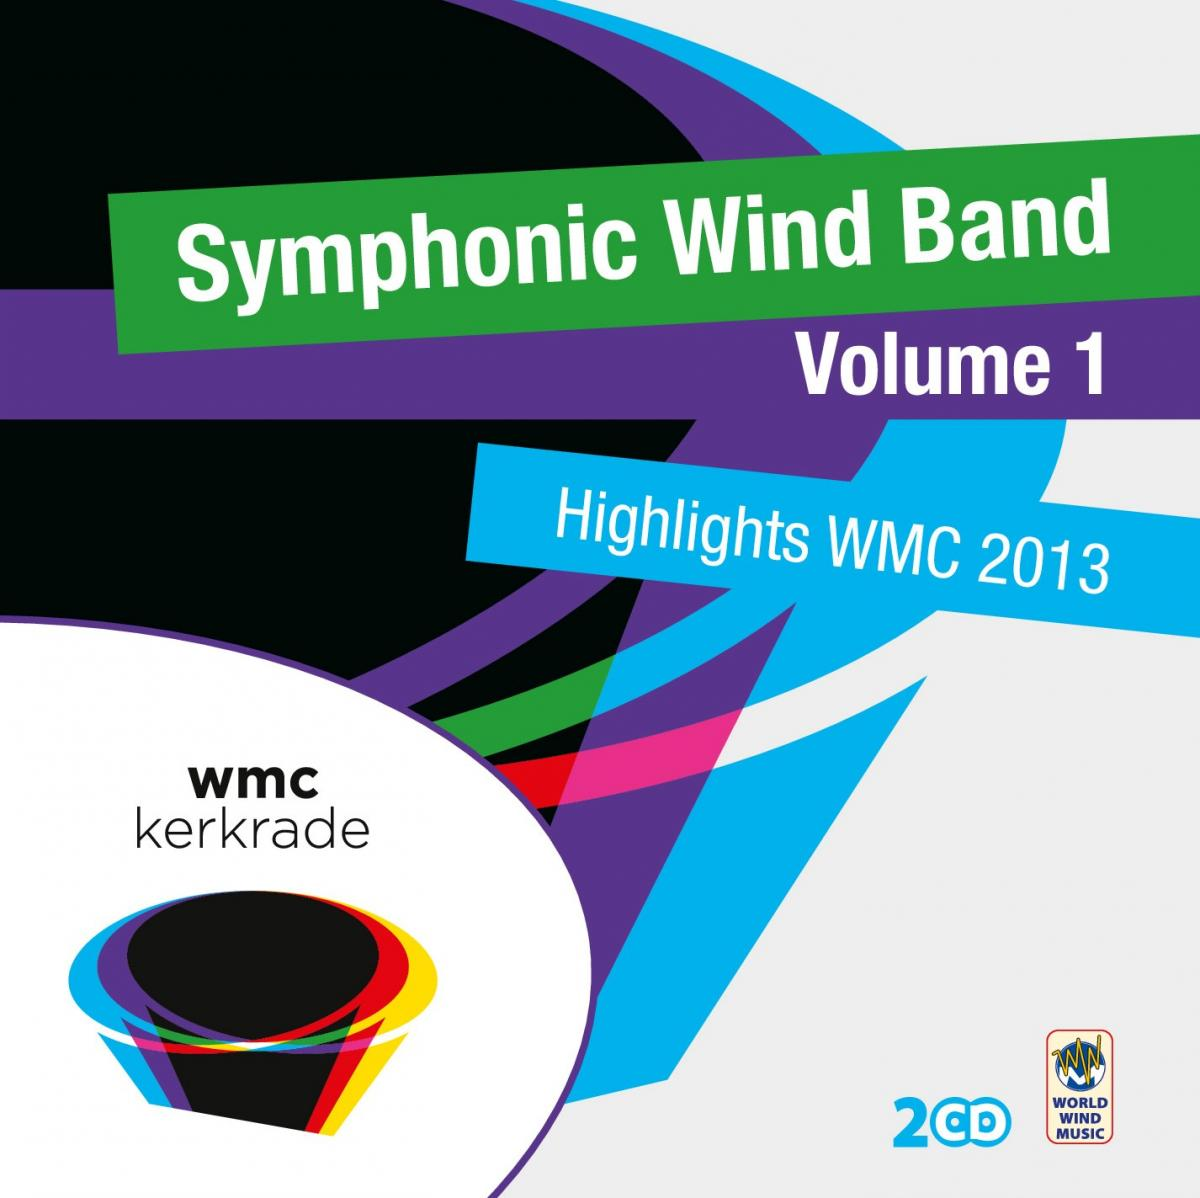 CD V/A - SYMPHONIC WIND BAND VOL.1